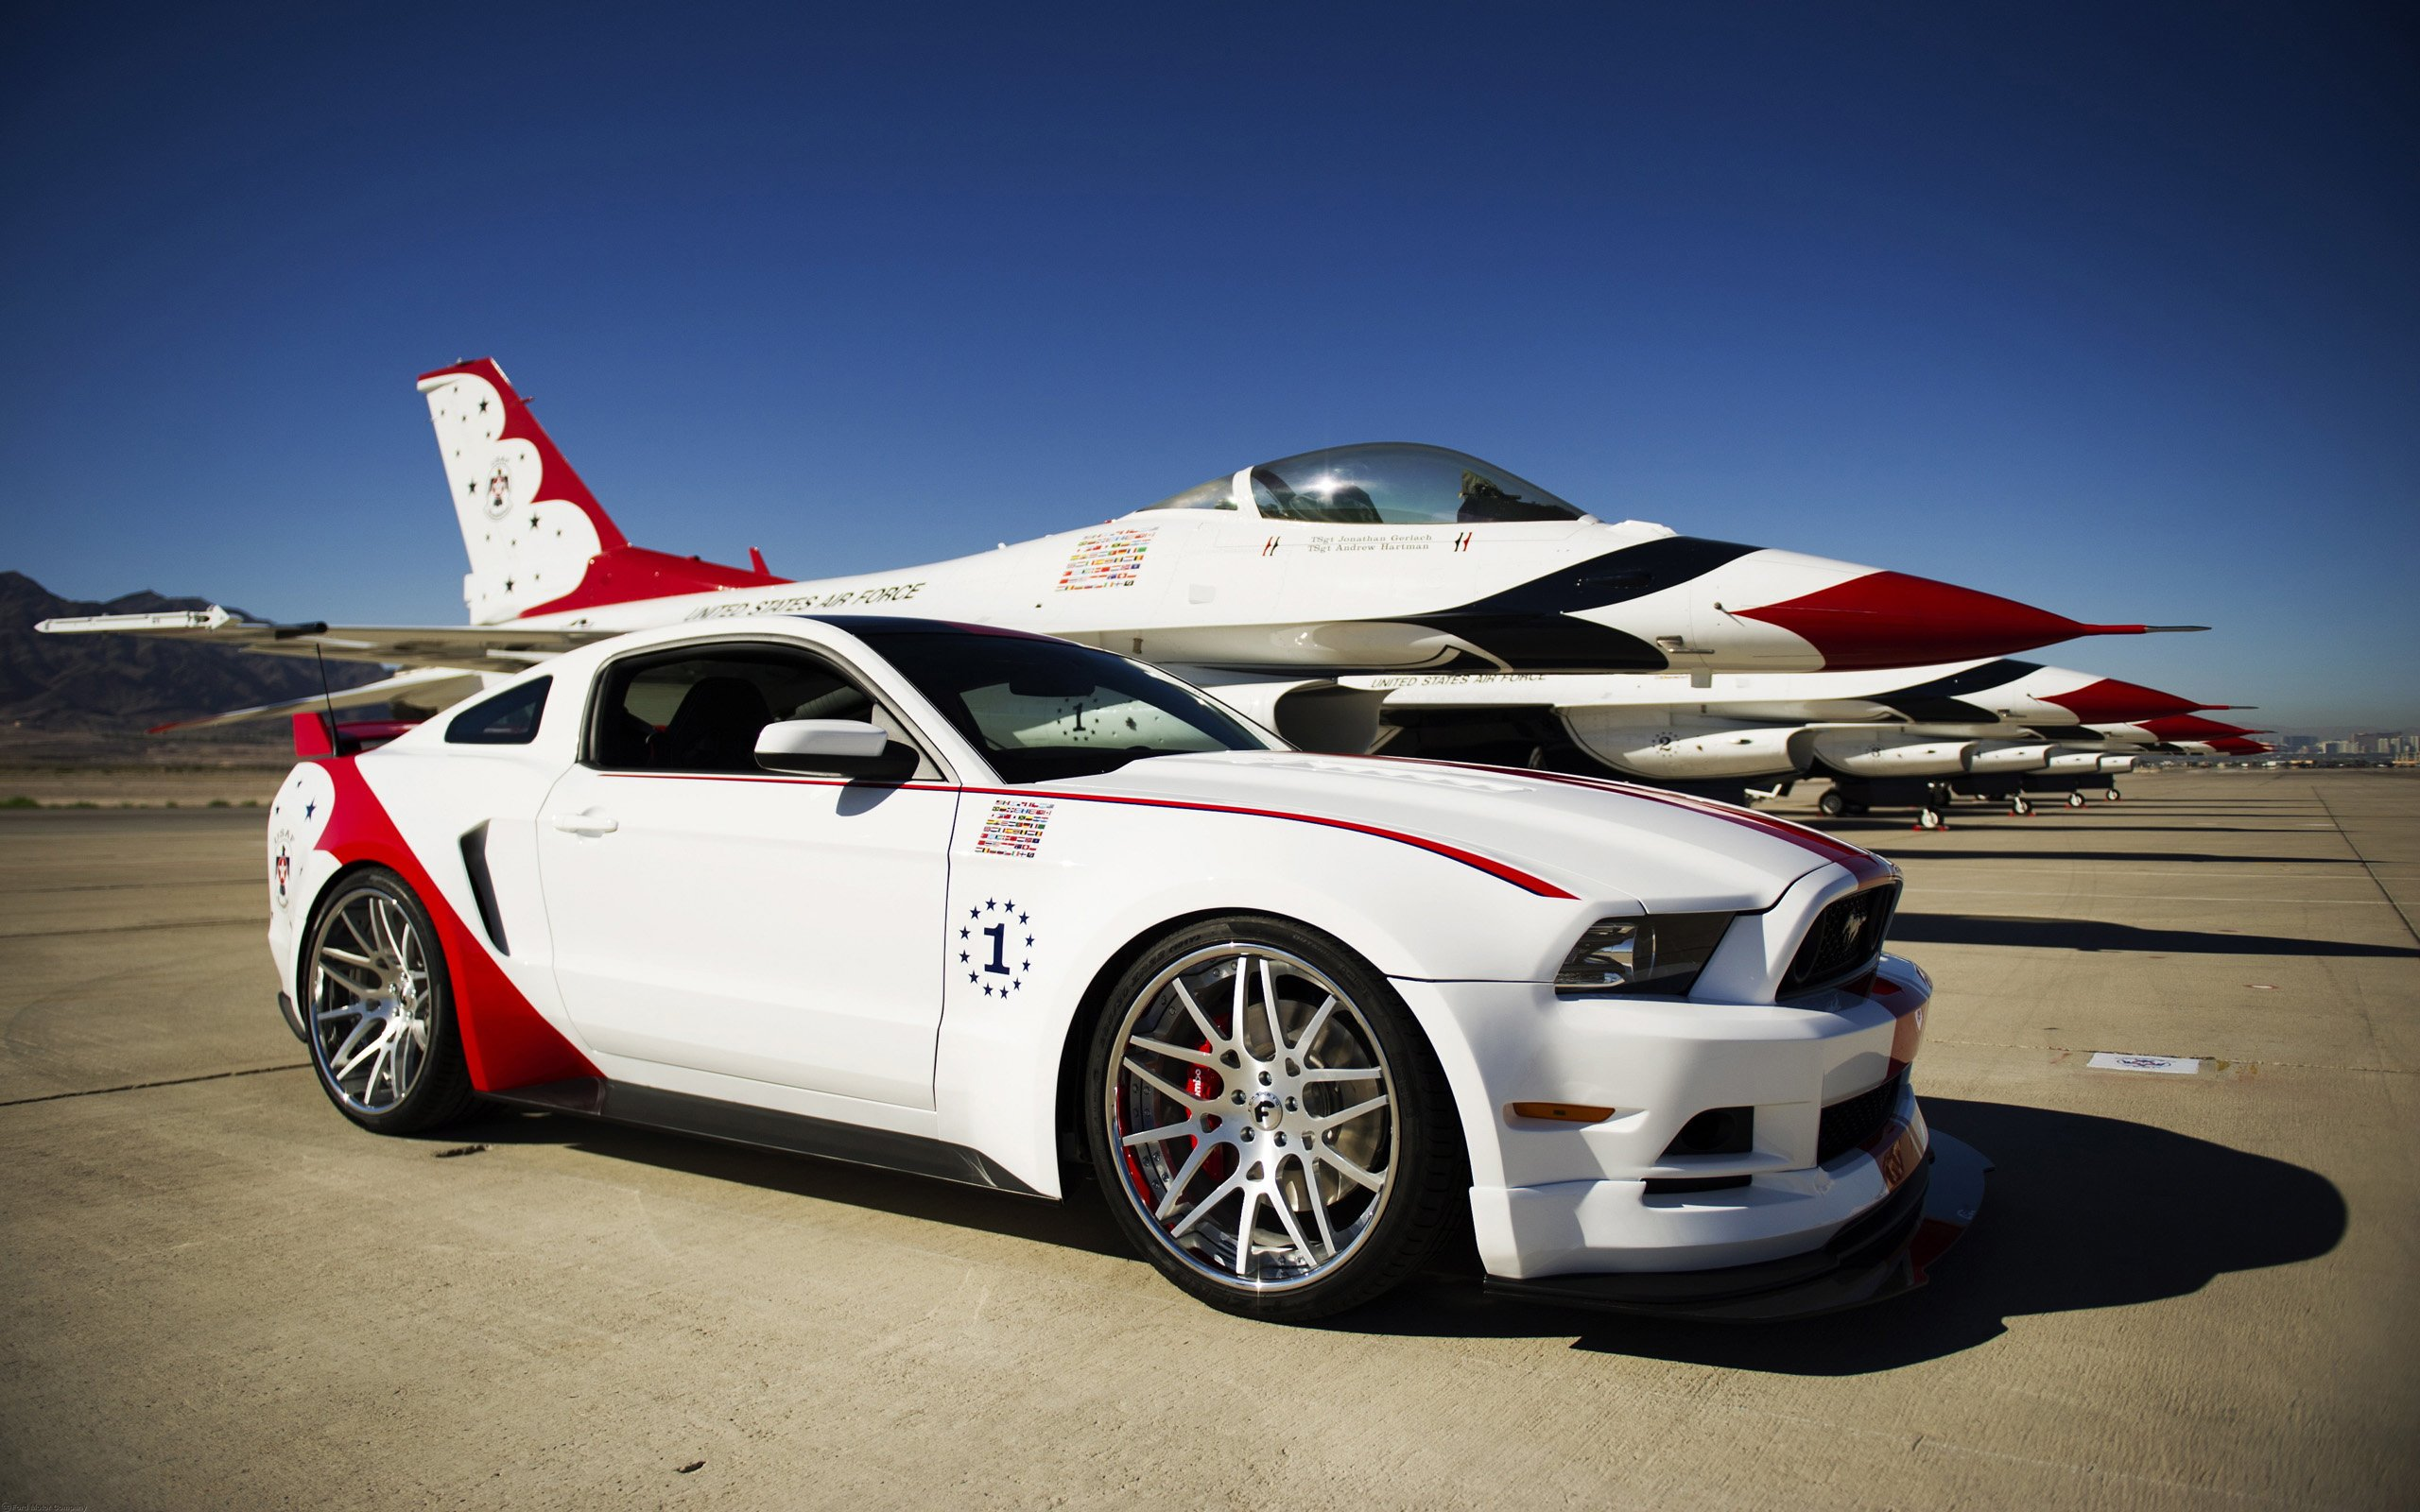 2014 Ford Mustang GT US Air Force Thunderbirds Edition Wallpaper HD 2560x1600